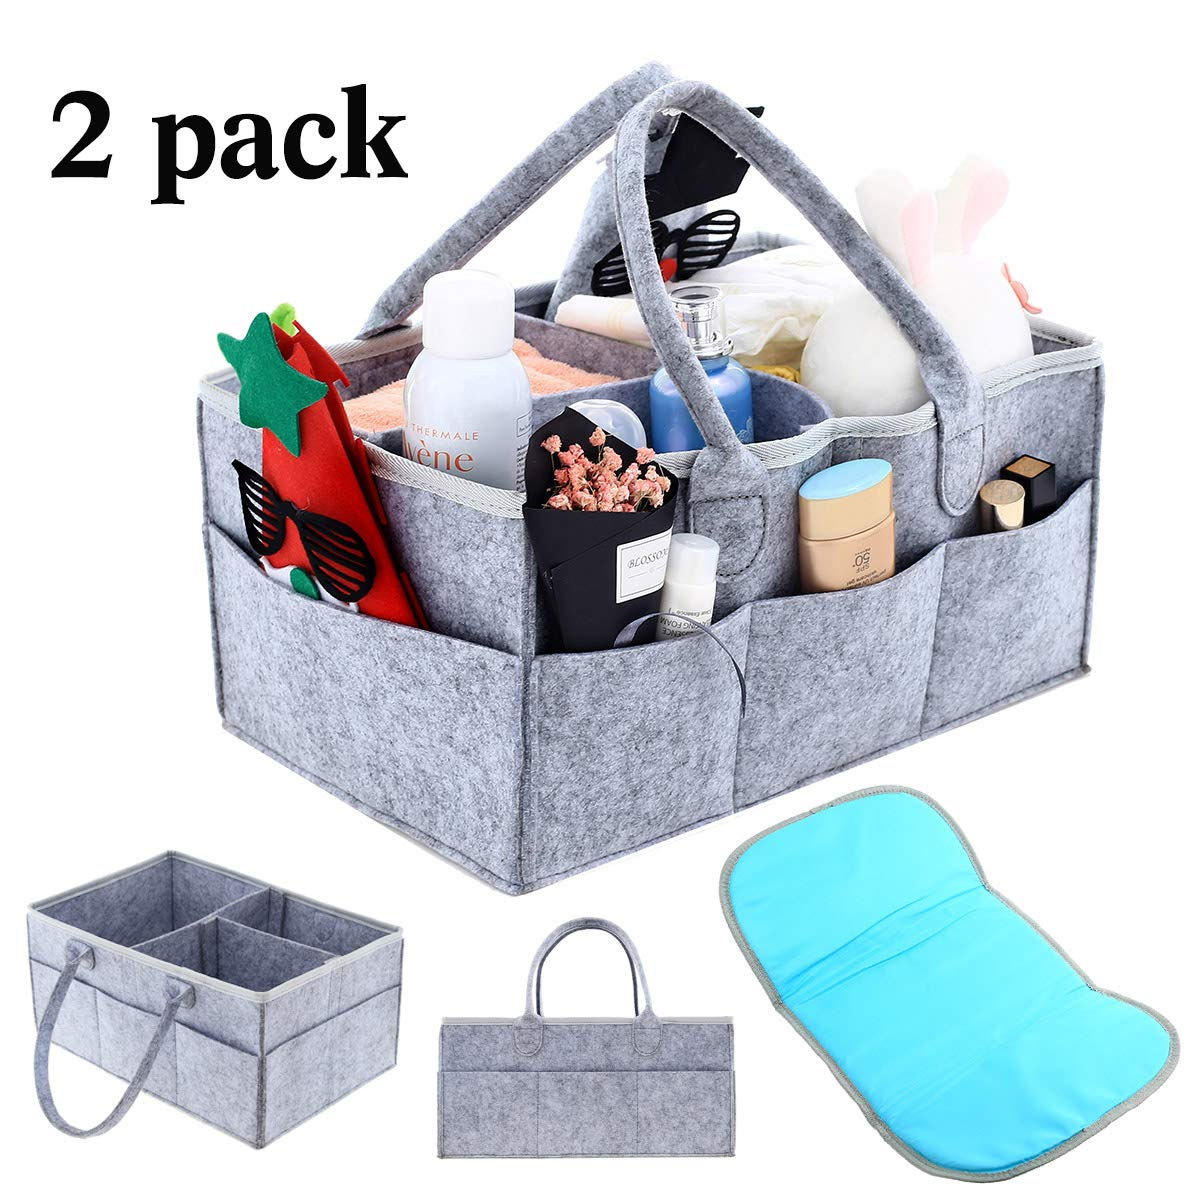 DeELF 2-Pack Large Baby Diaper Caddy Organizers with a Changing Pad, Closable and Washable Diaper Storage Basket for Changing Table and Car, Gray Color by DeELF